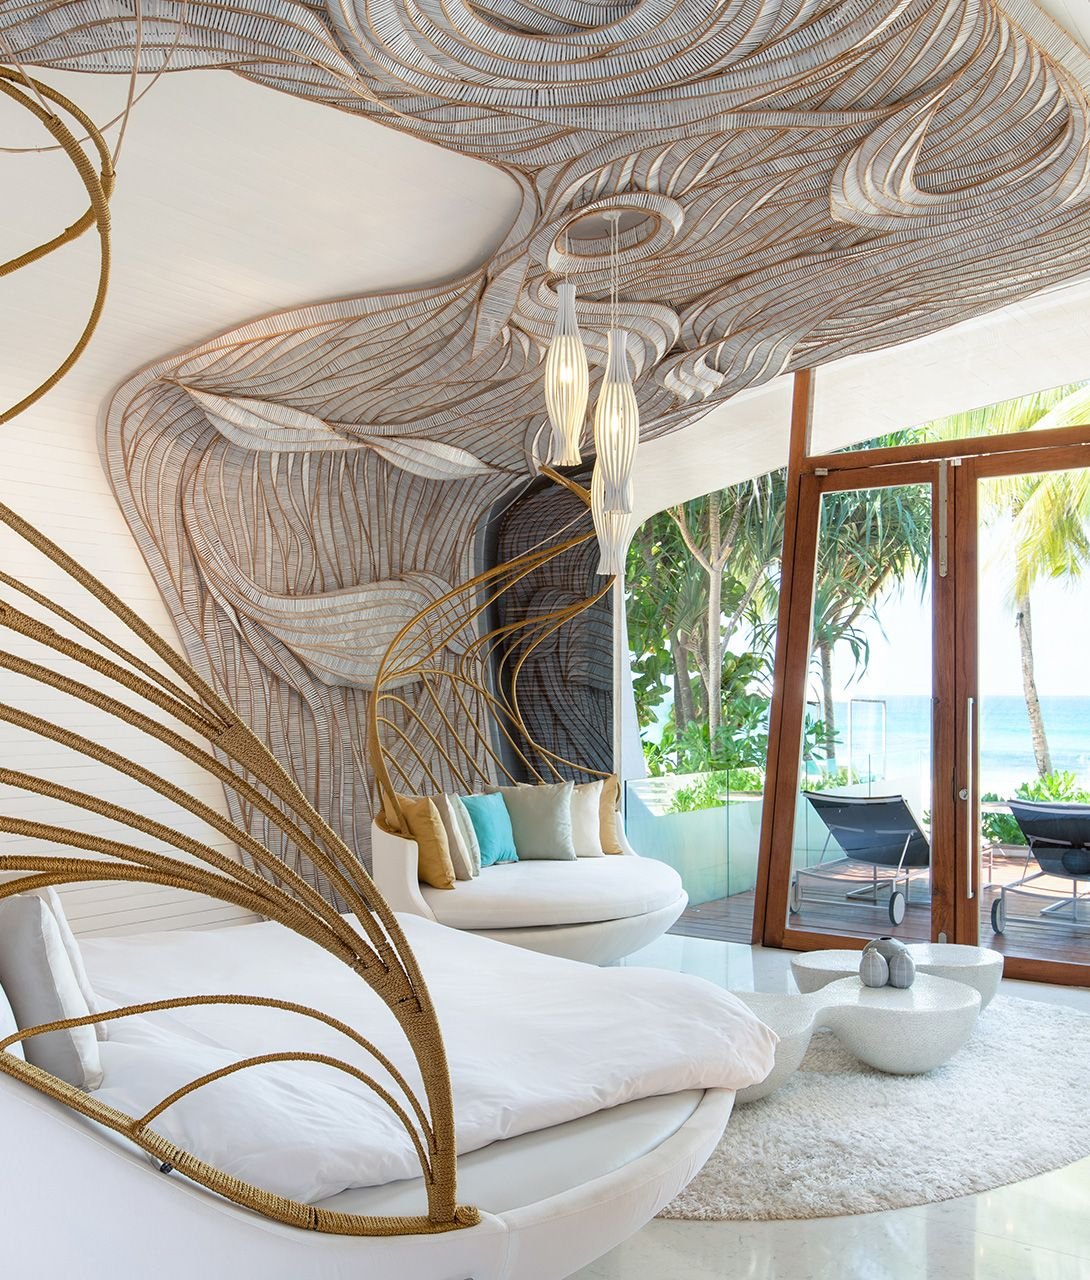 Iniala Beach House Design in Phang Nga